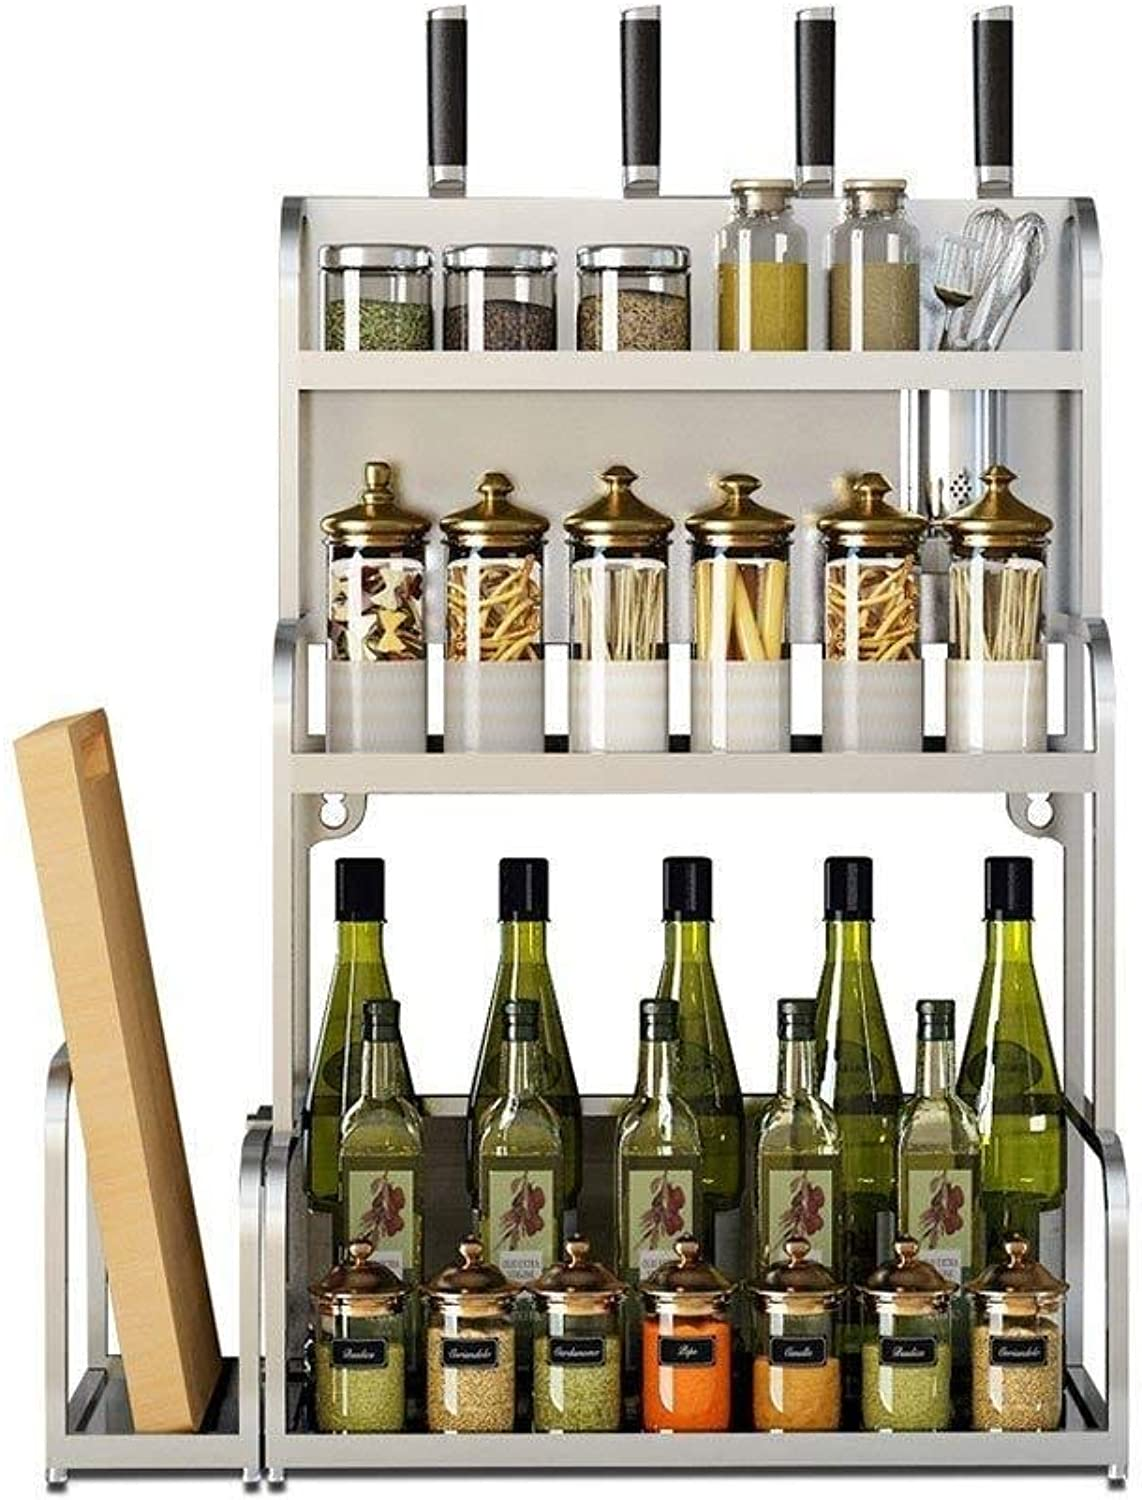 Stainless Steel Kitchen Rack Floor Multi-Layer Storage Oil Salt Sauce Vinegar Knife Supplies Seasoning Seasoning Shelf ZXMDMZ (Size   Small)